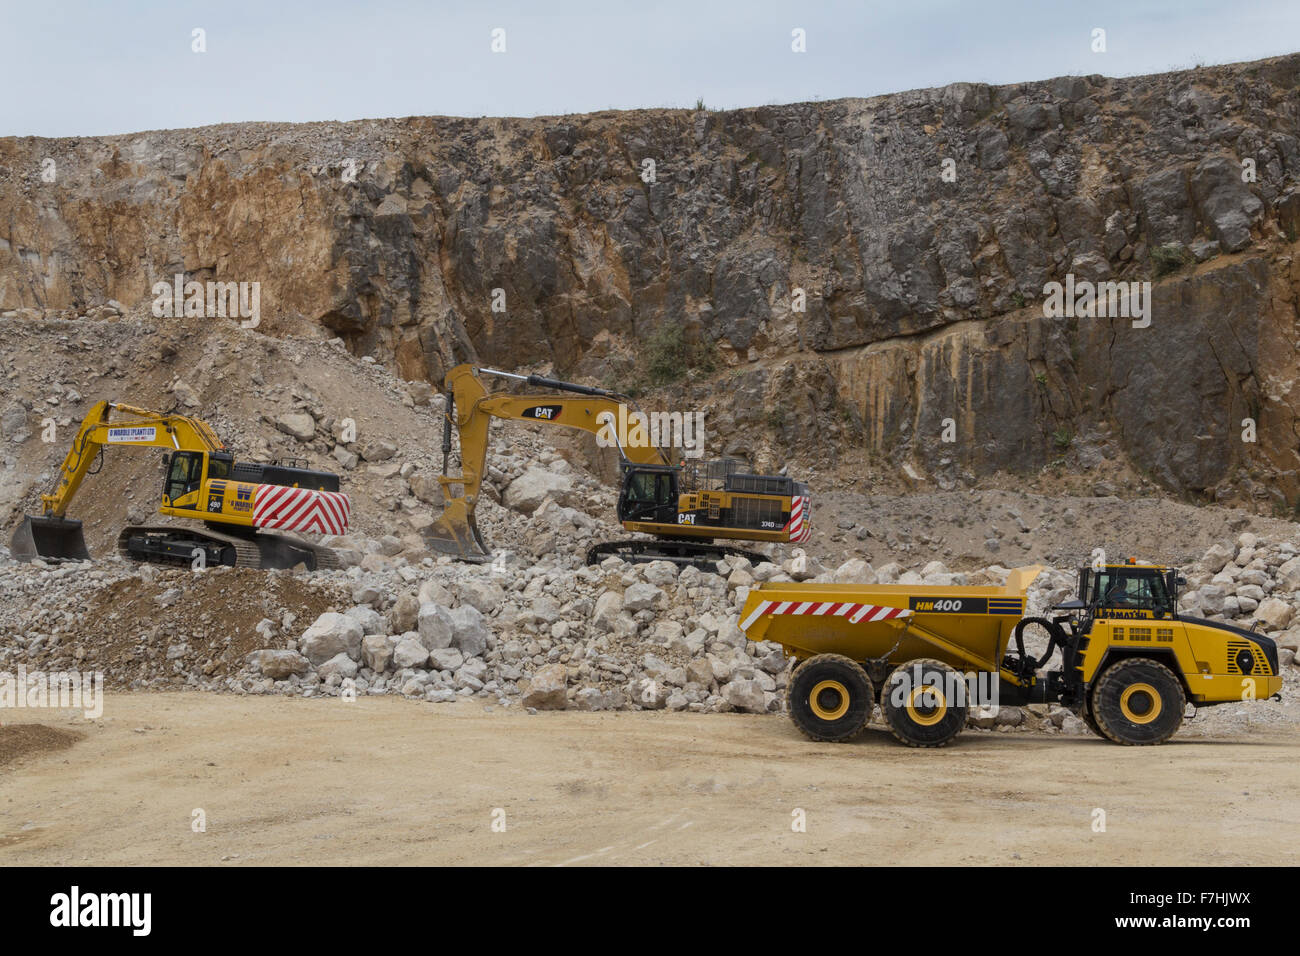 Demonstration of excavators and dump trucks at Hillhead Quarrying Recycling and Construction Exhibition Stock Photo